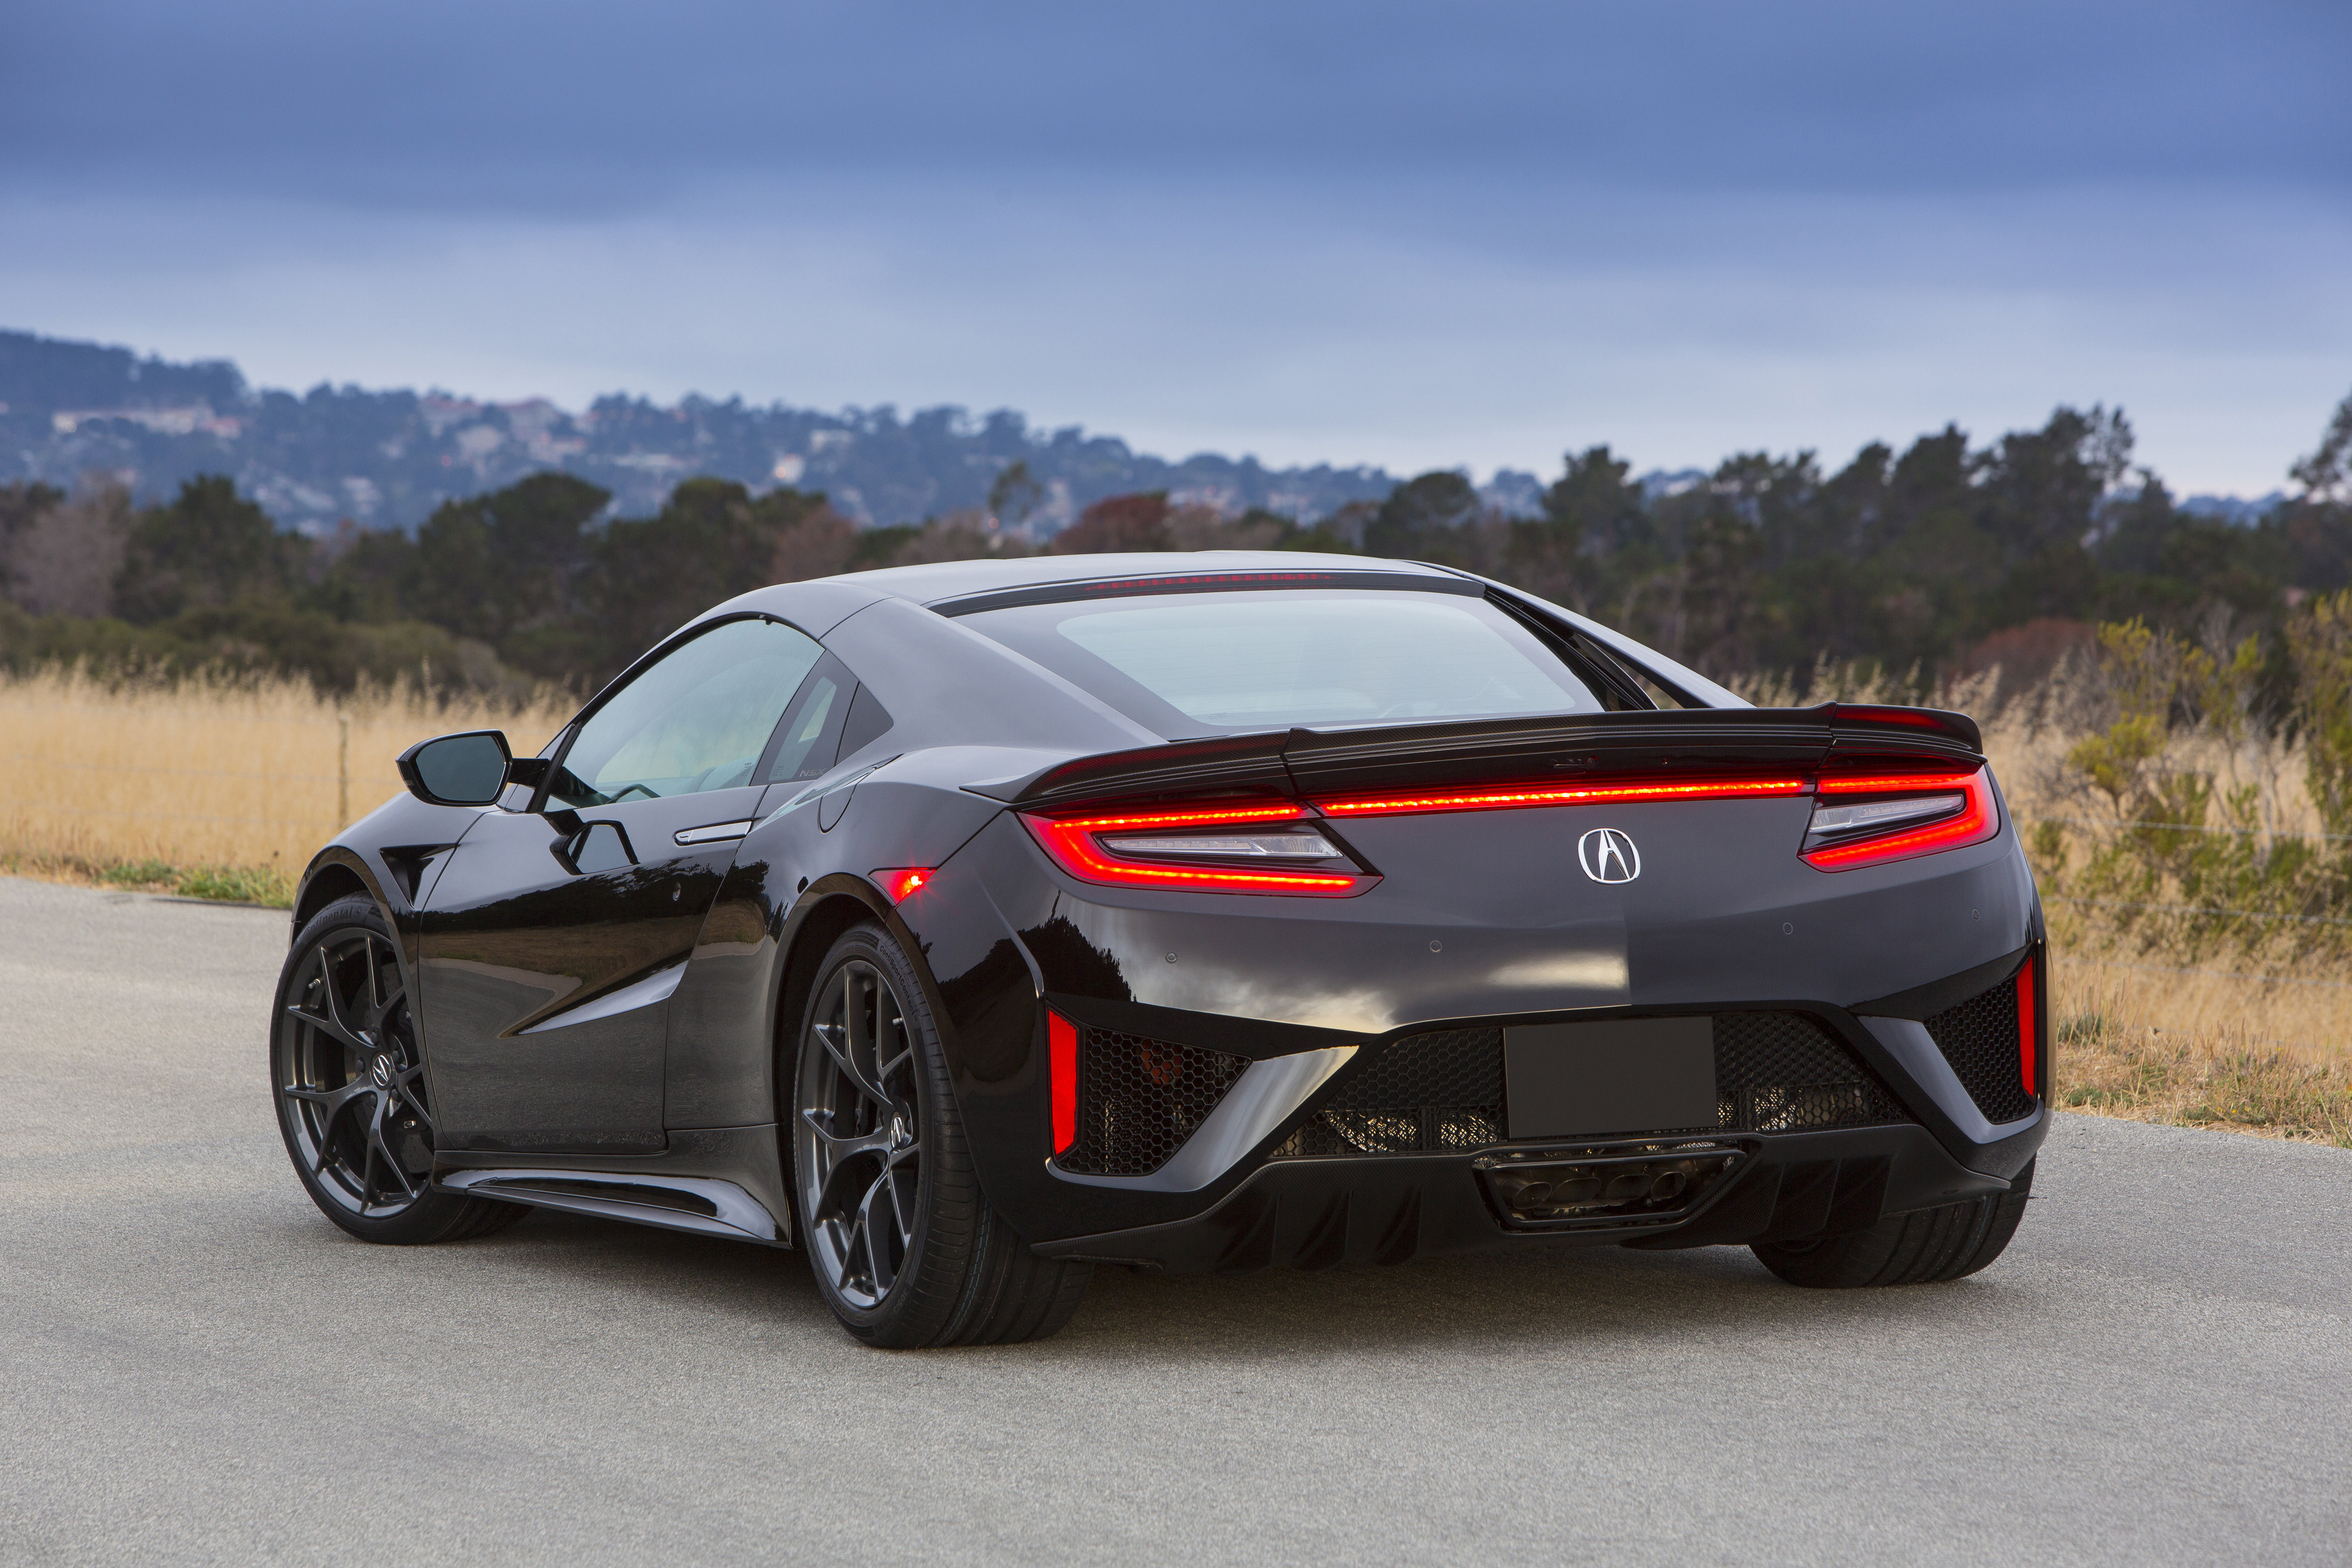 2017 Honda NSX – full technical rundown on Honda's AWD twin-turbocharged 573 hp hybrid supercar ...